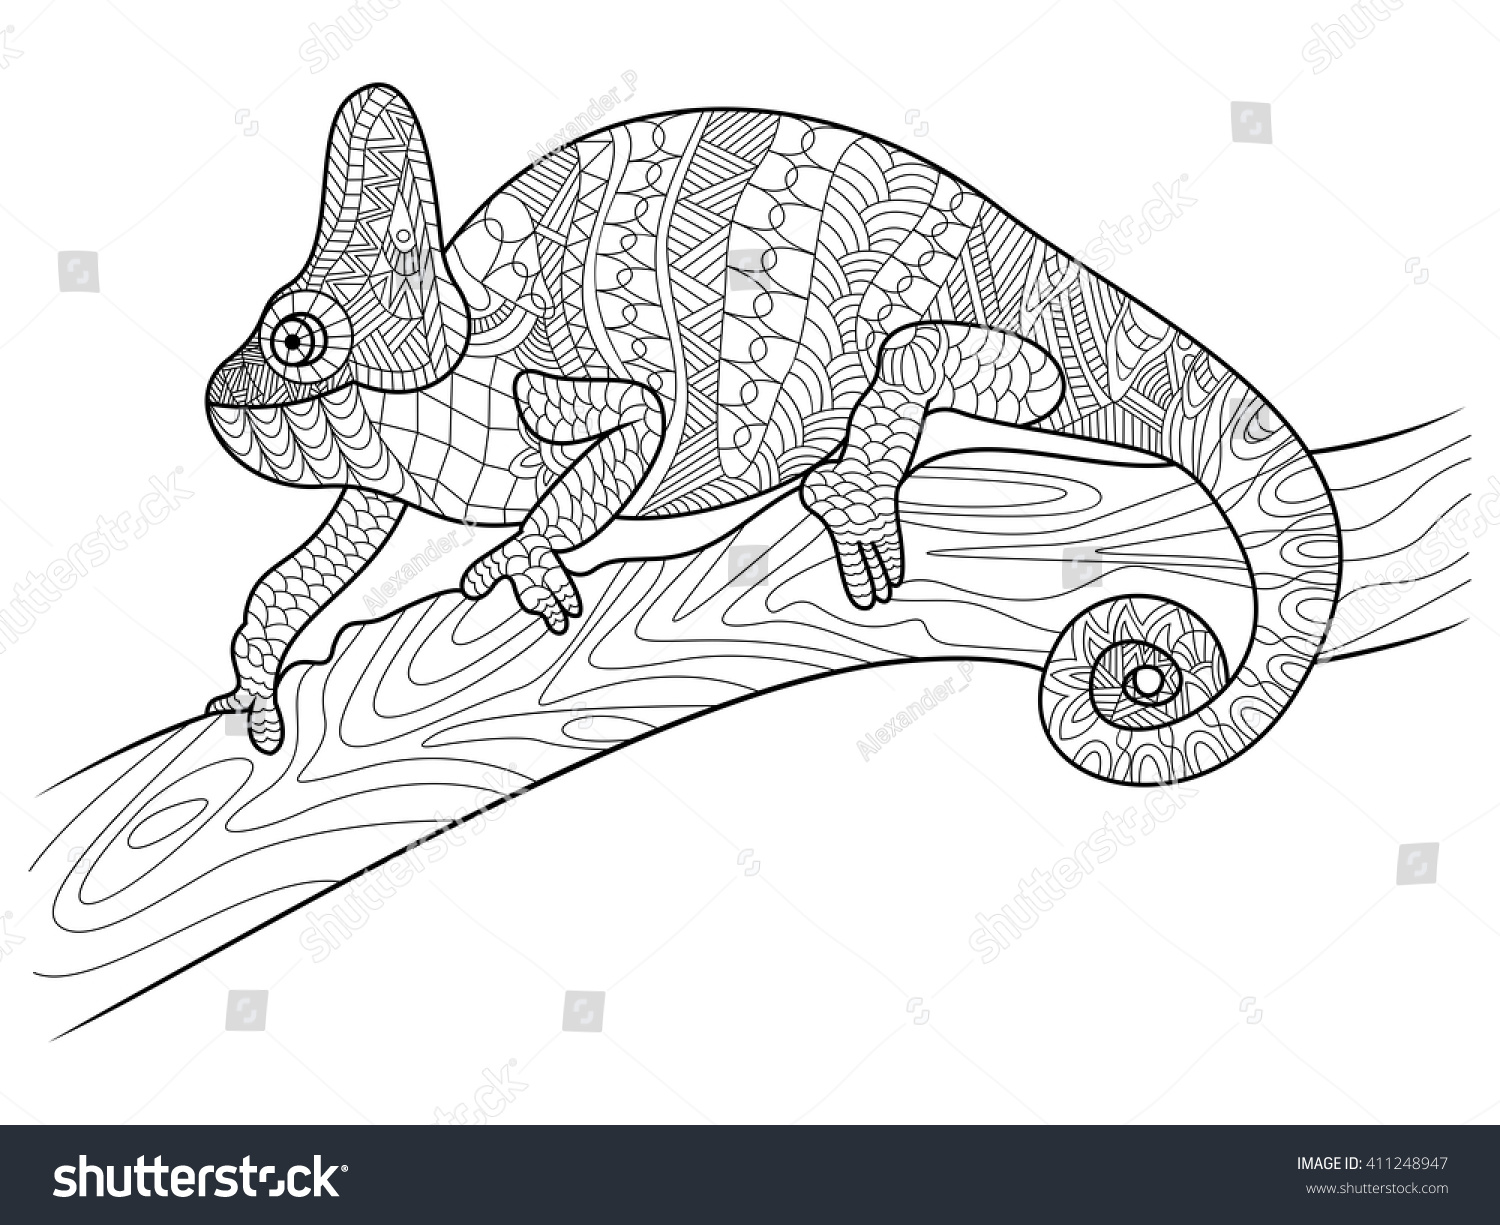 Chameleon Animal Coloring Book For Adults Vector Illustration Zentangle Style Black And White Lines